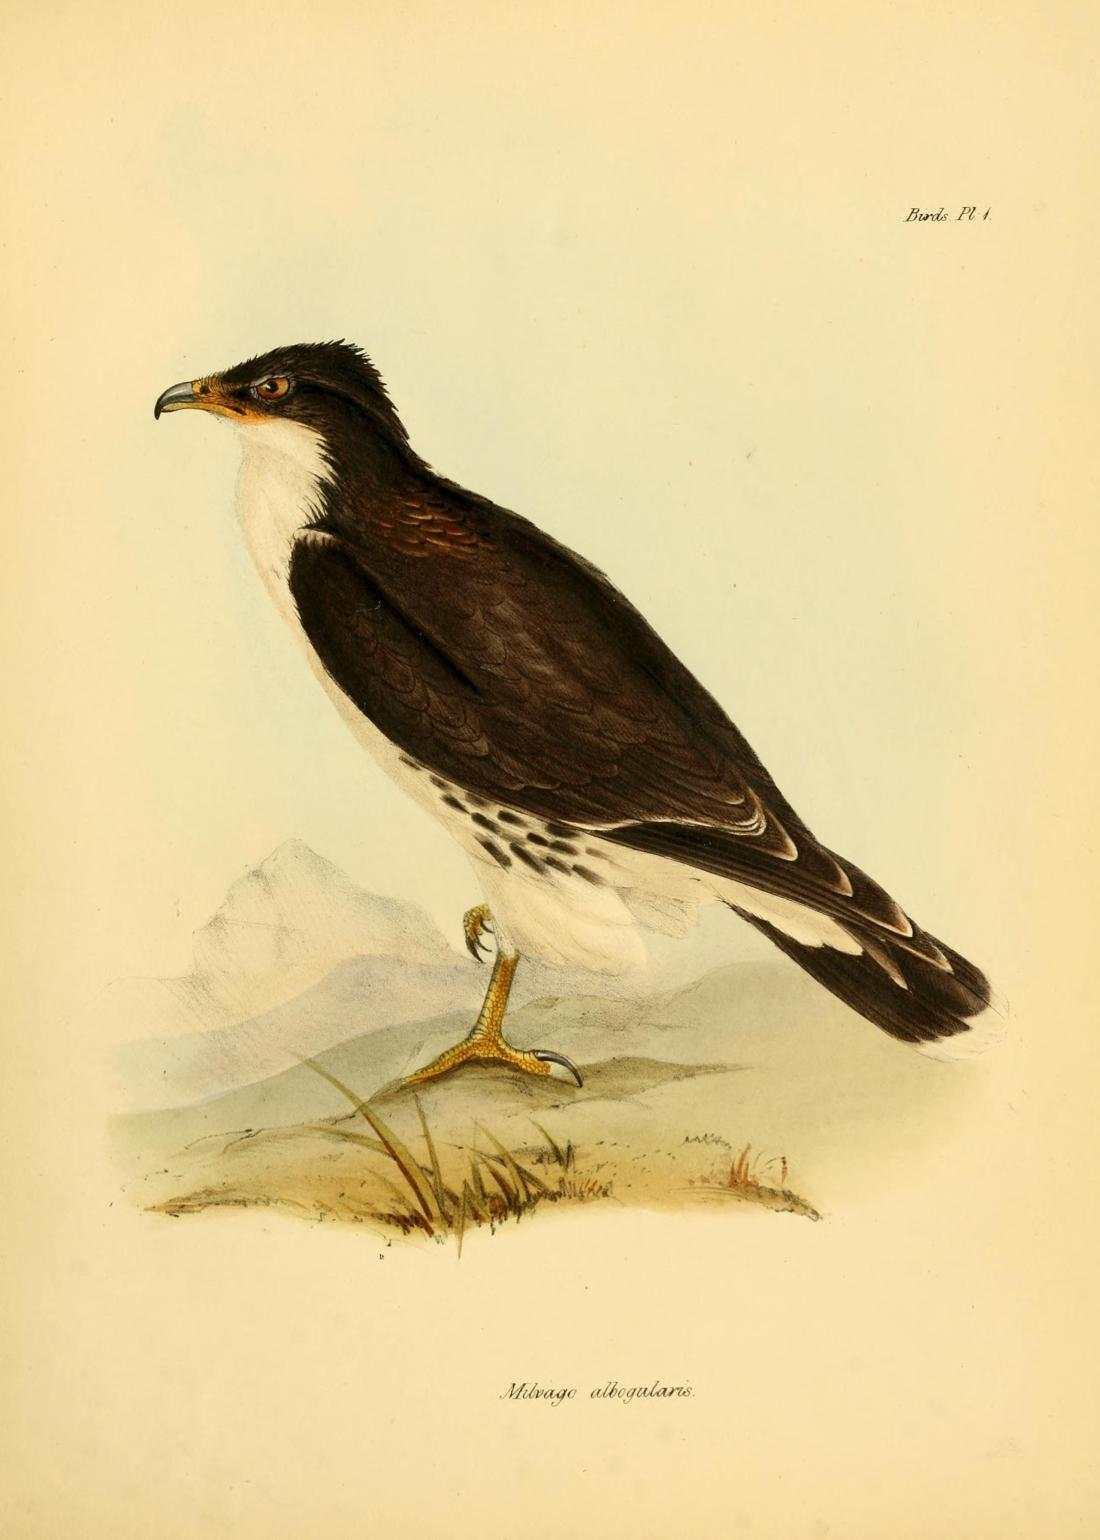 """Milvago albogularis"" (White-throated Caracara). Plate II, page 35."